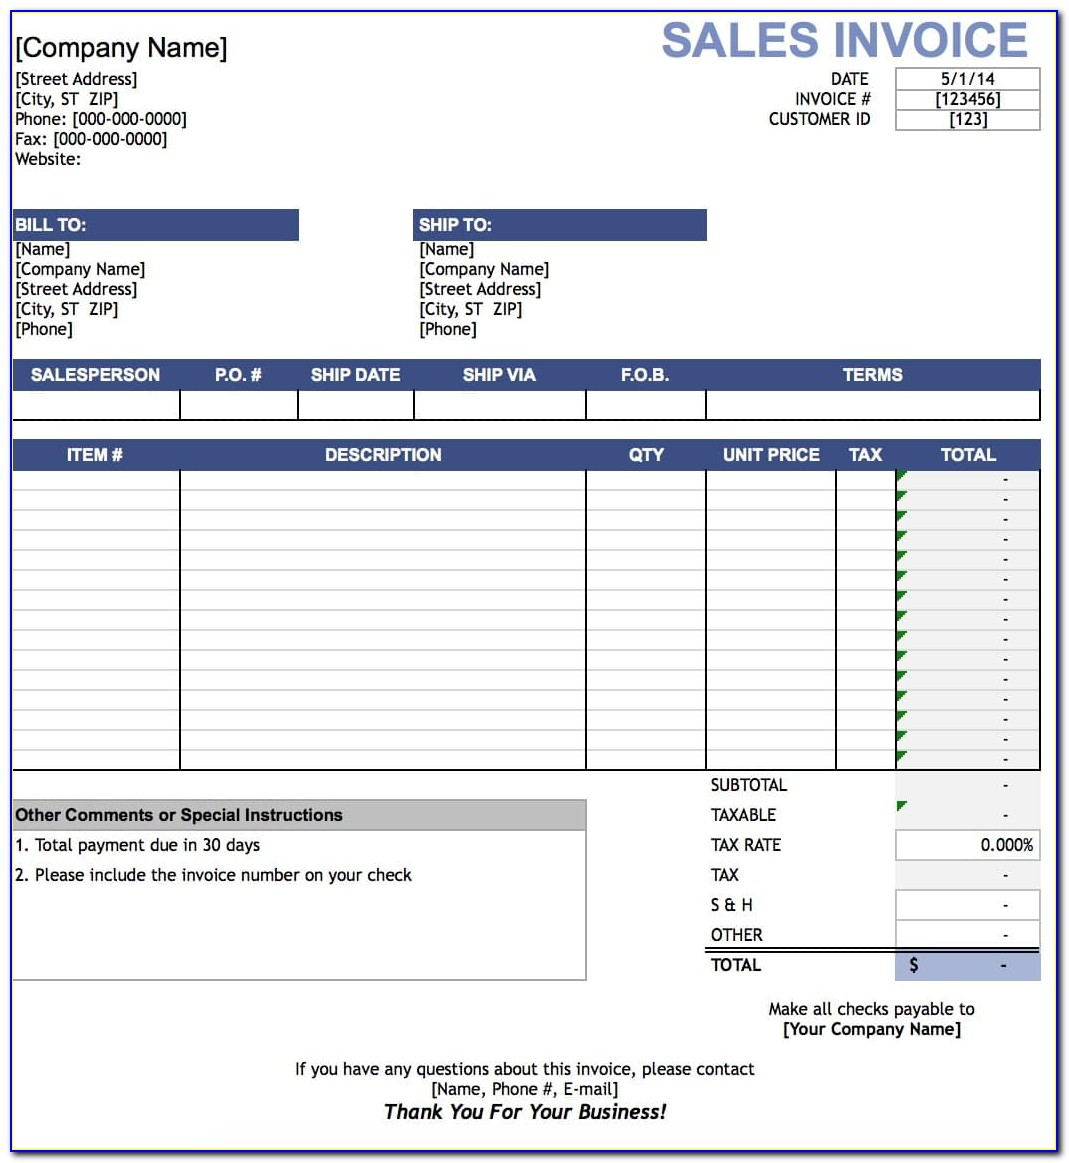 Free Sales Invoice Template Excel